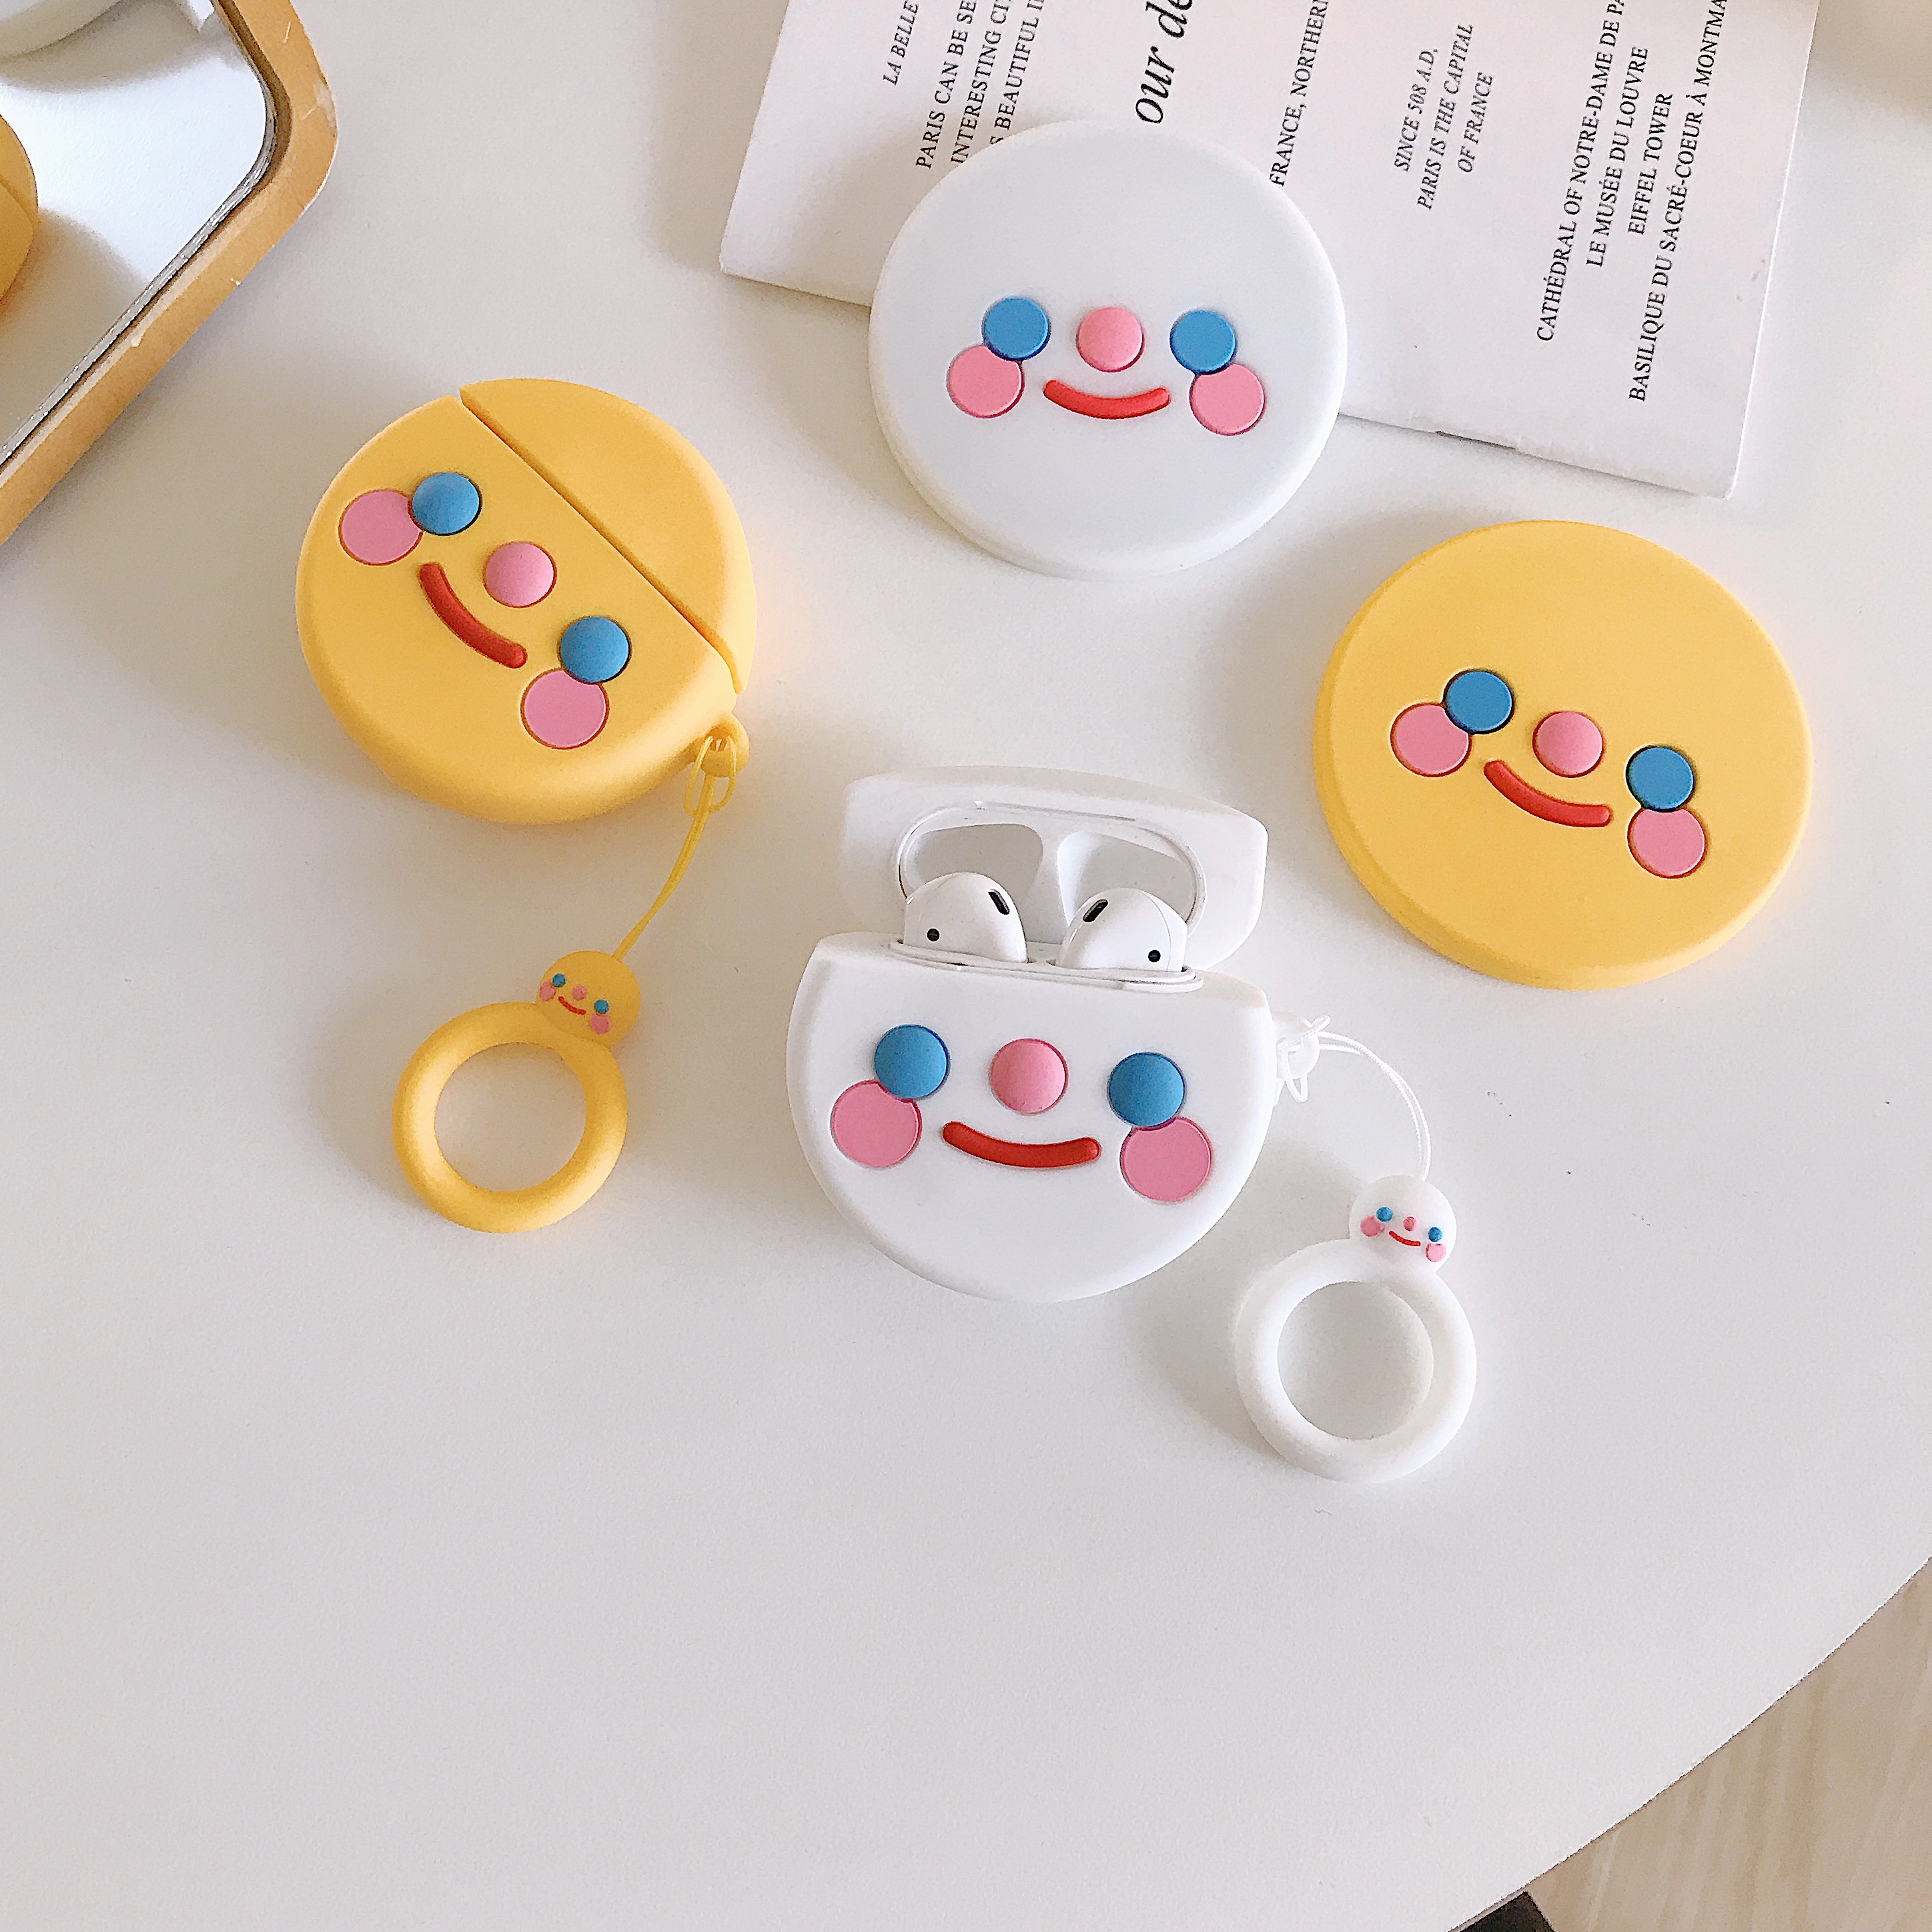 3D Cute Earphone Case for Airpods Case Soft Silicone smile-face Headphone Protective Cover for Apple Airpods For Earpods Case